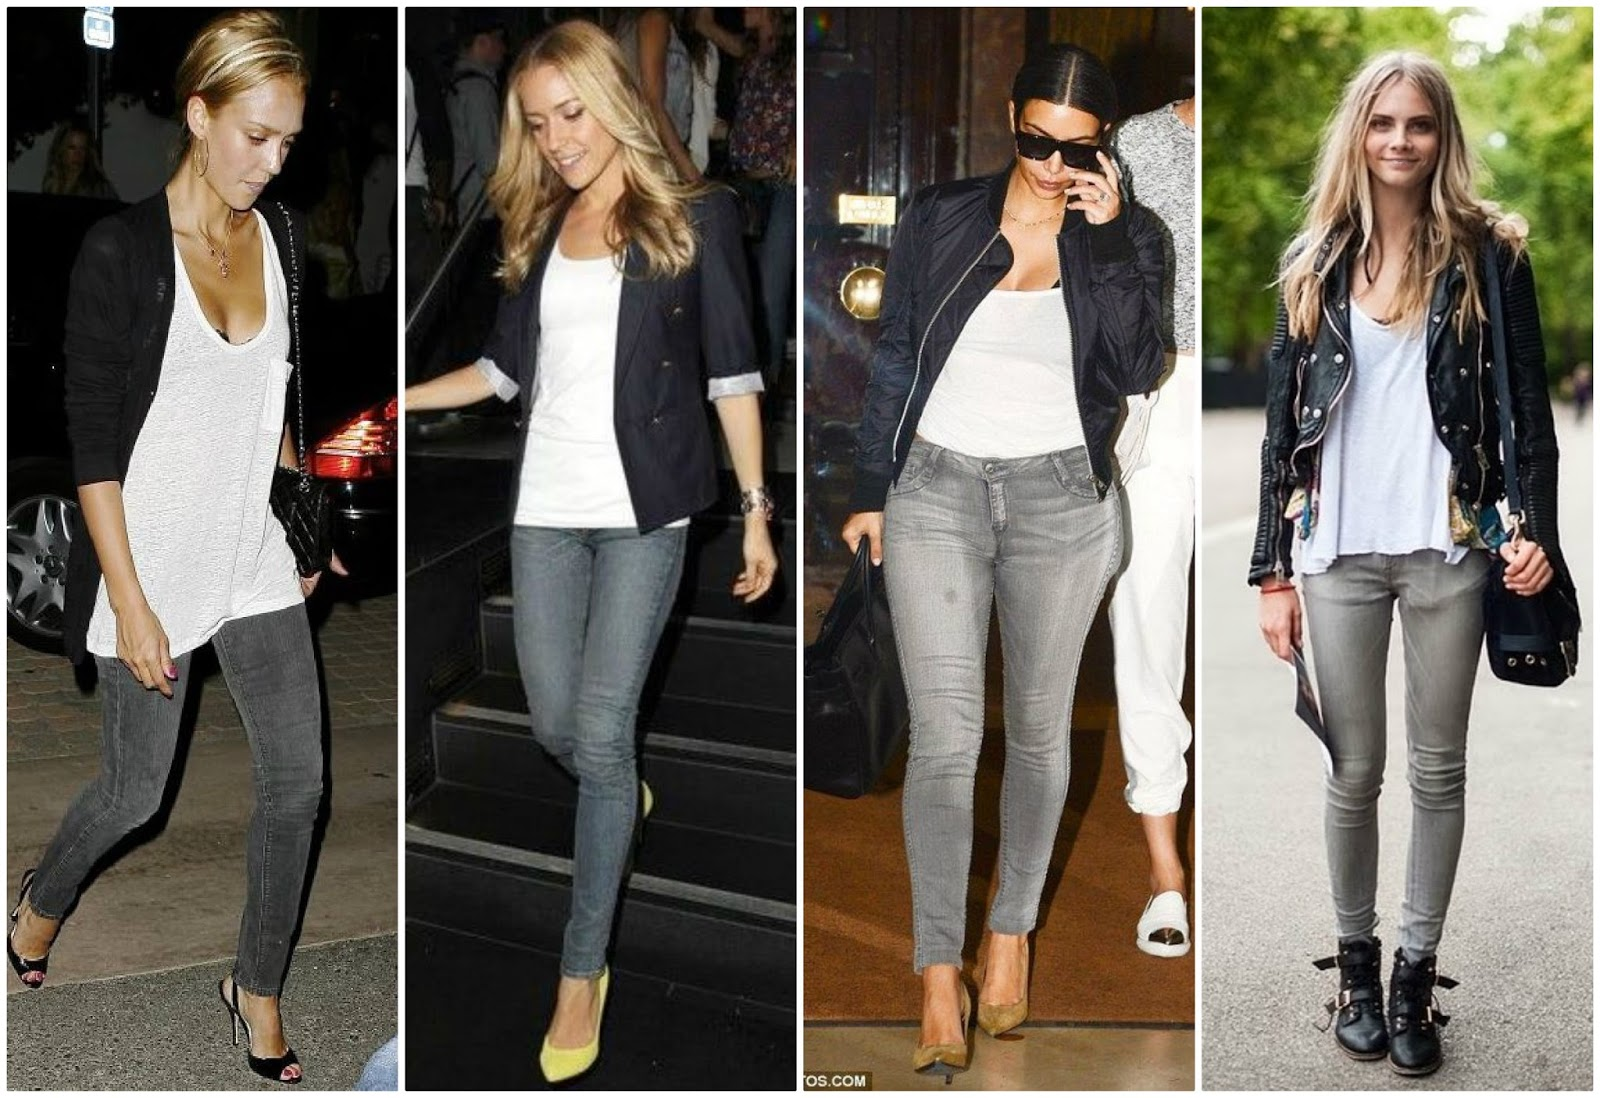 Top Three Grey Jeans Outfits | On the Daily EXPRESS